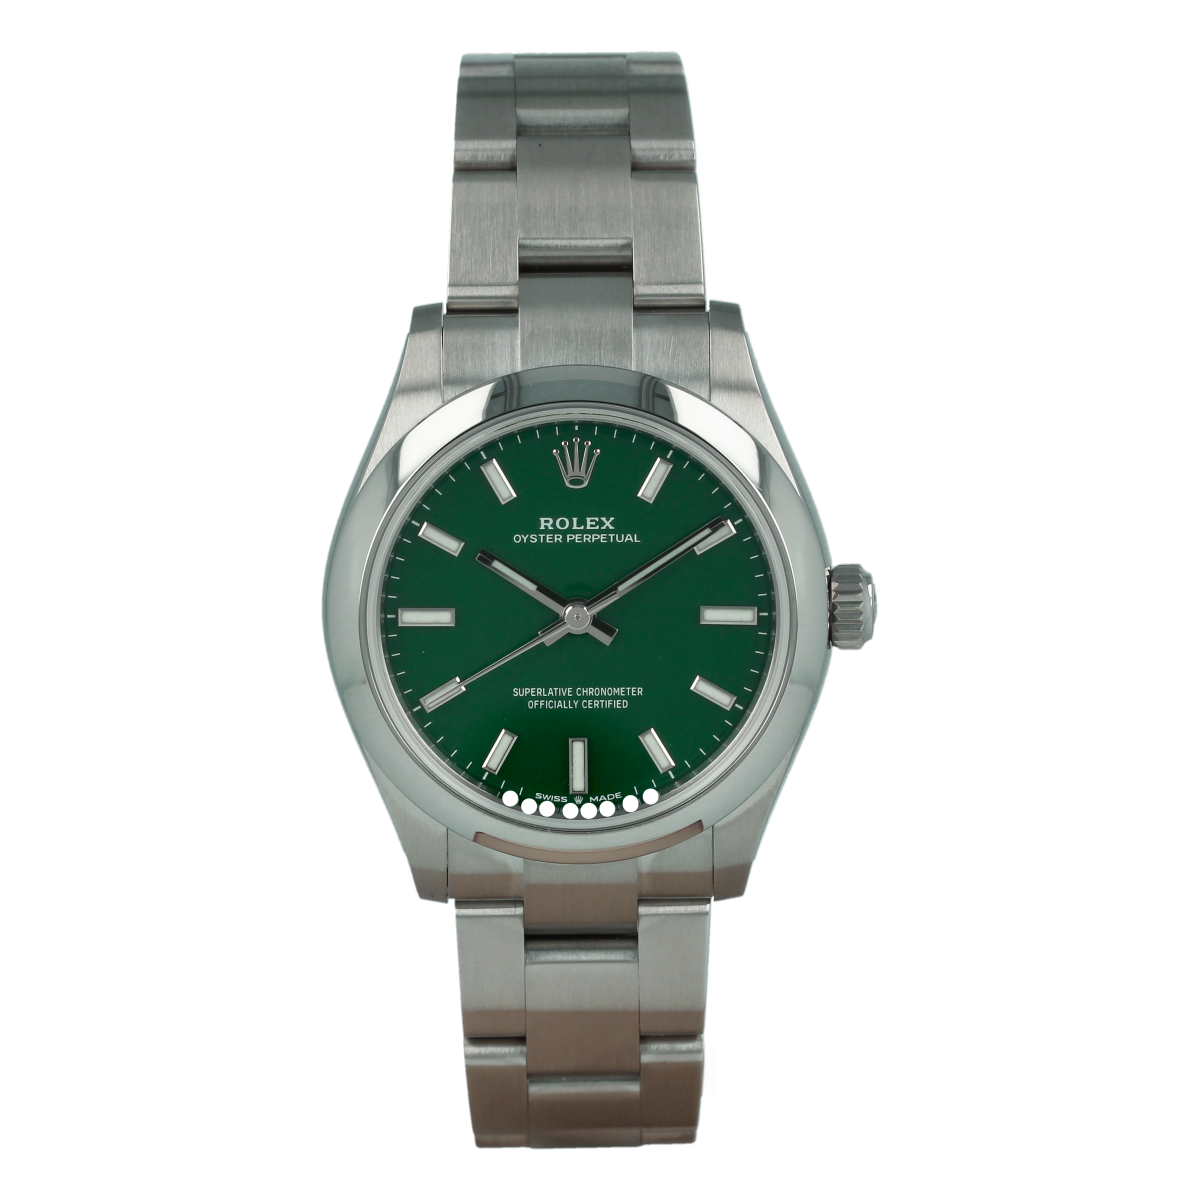 Rolex Oyster Perpetual 277200 31mm Green Dial *Brand-New* | Buy pre-owned Rolex watch